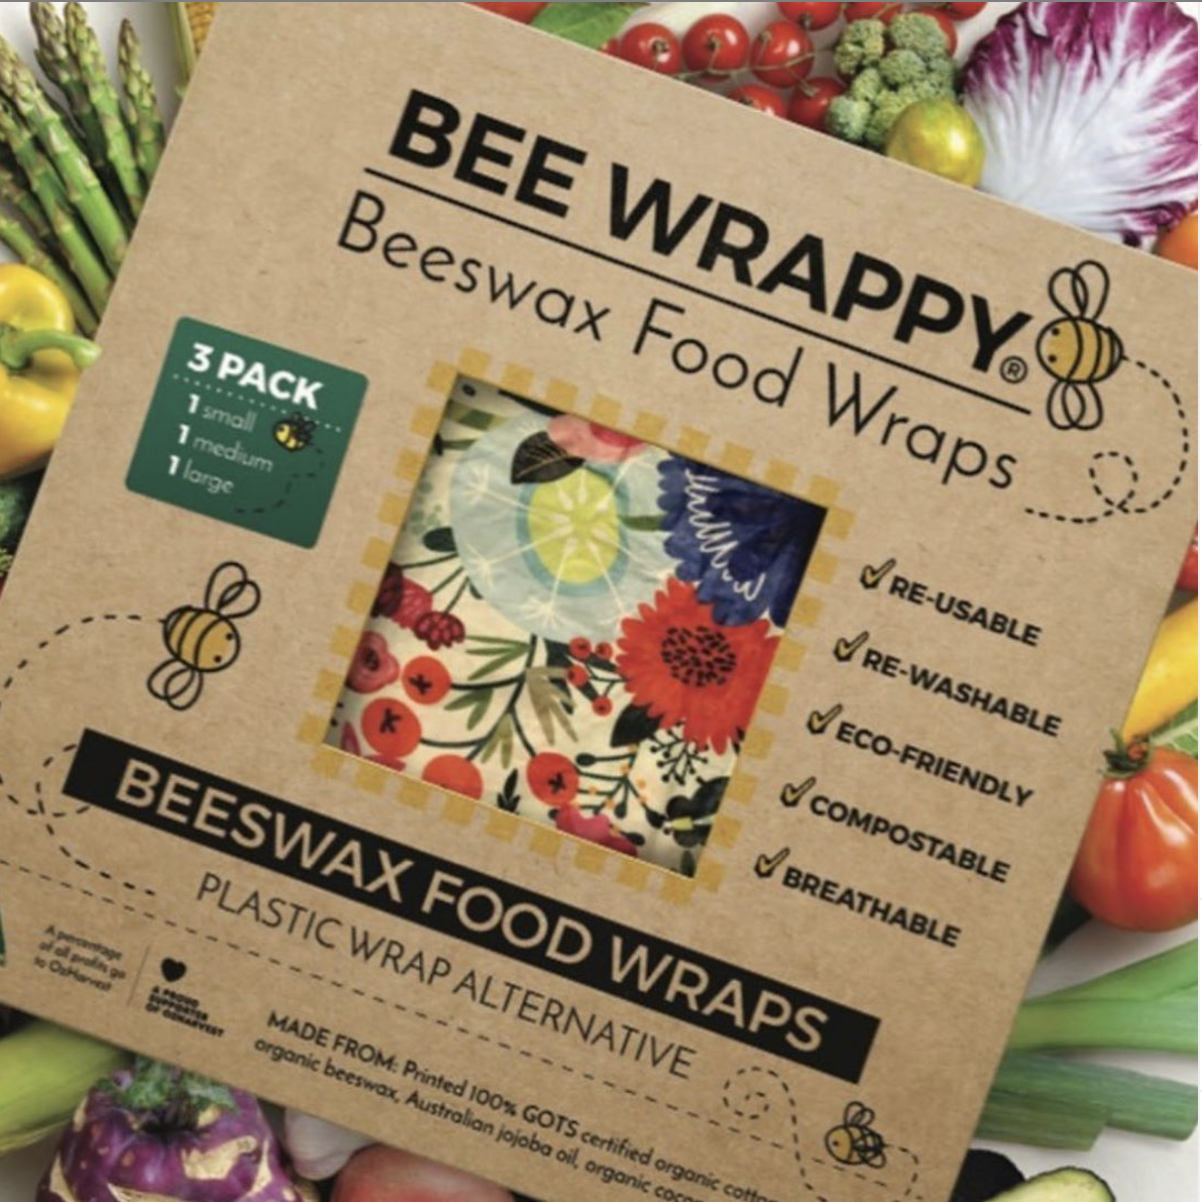 Changing Single-Use Mentality with Beeswax Wrappings